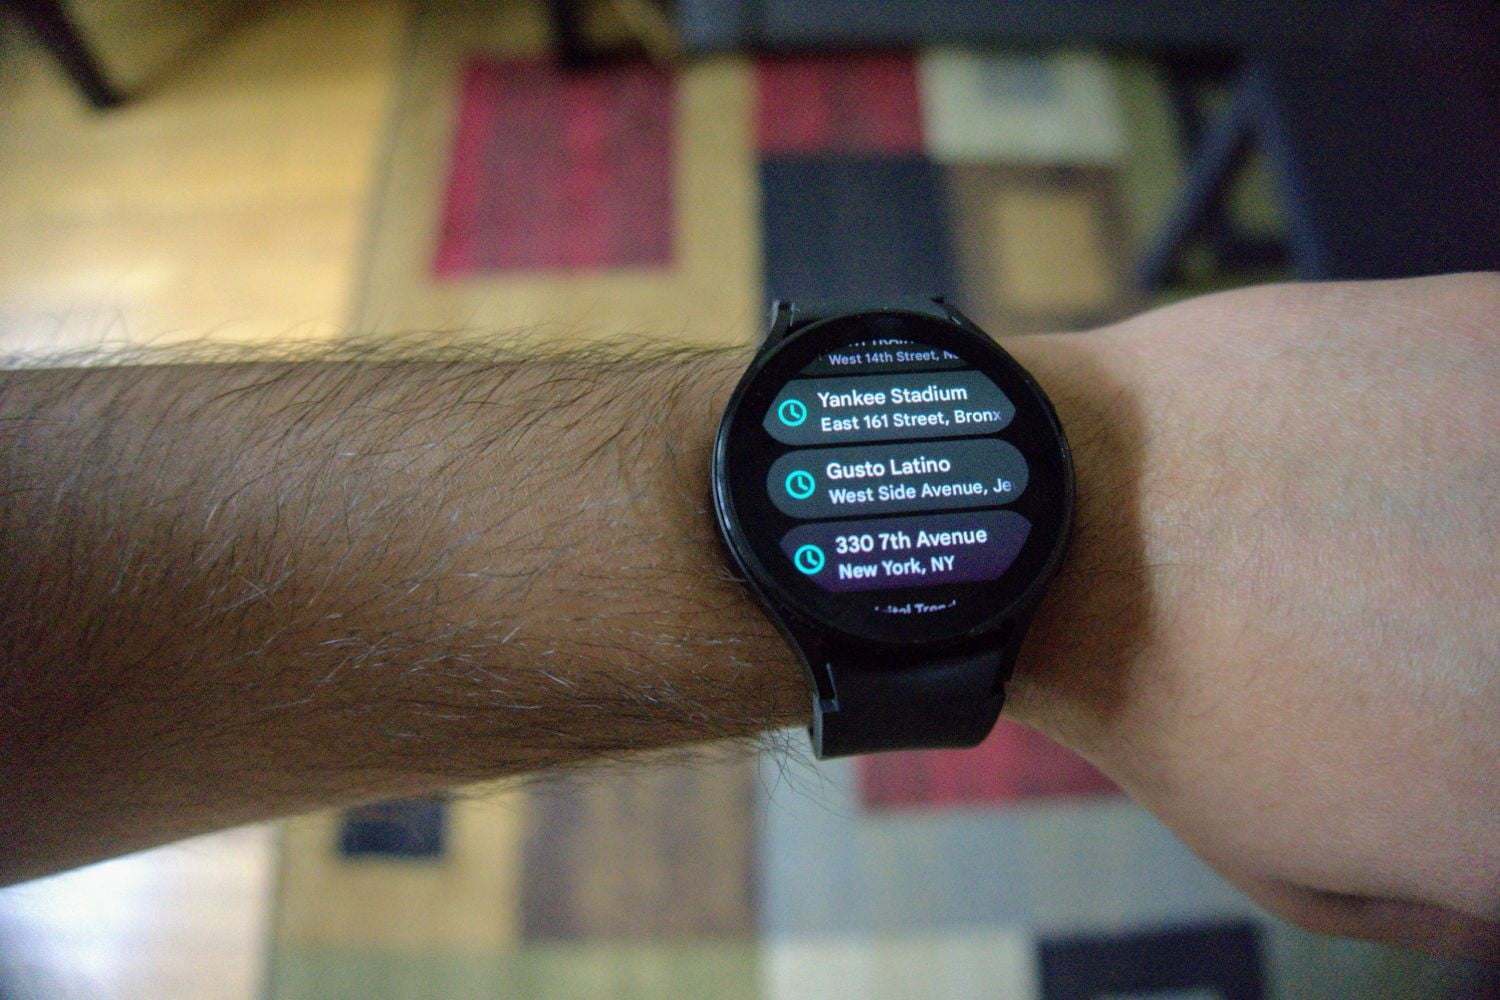 Watch 4 map directions.